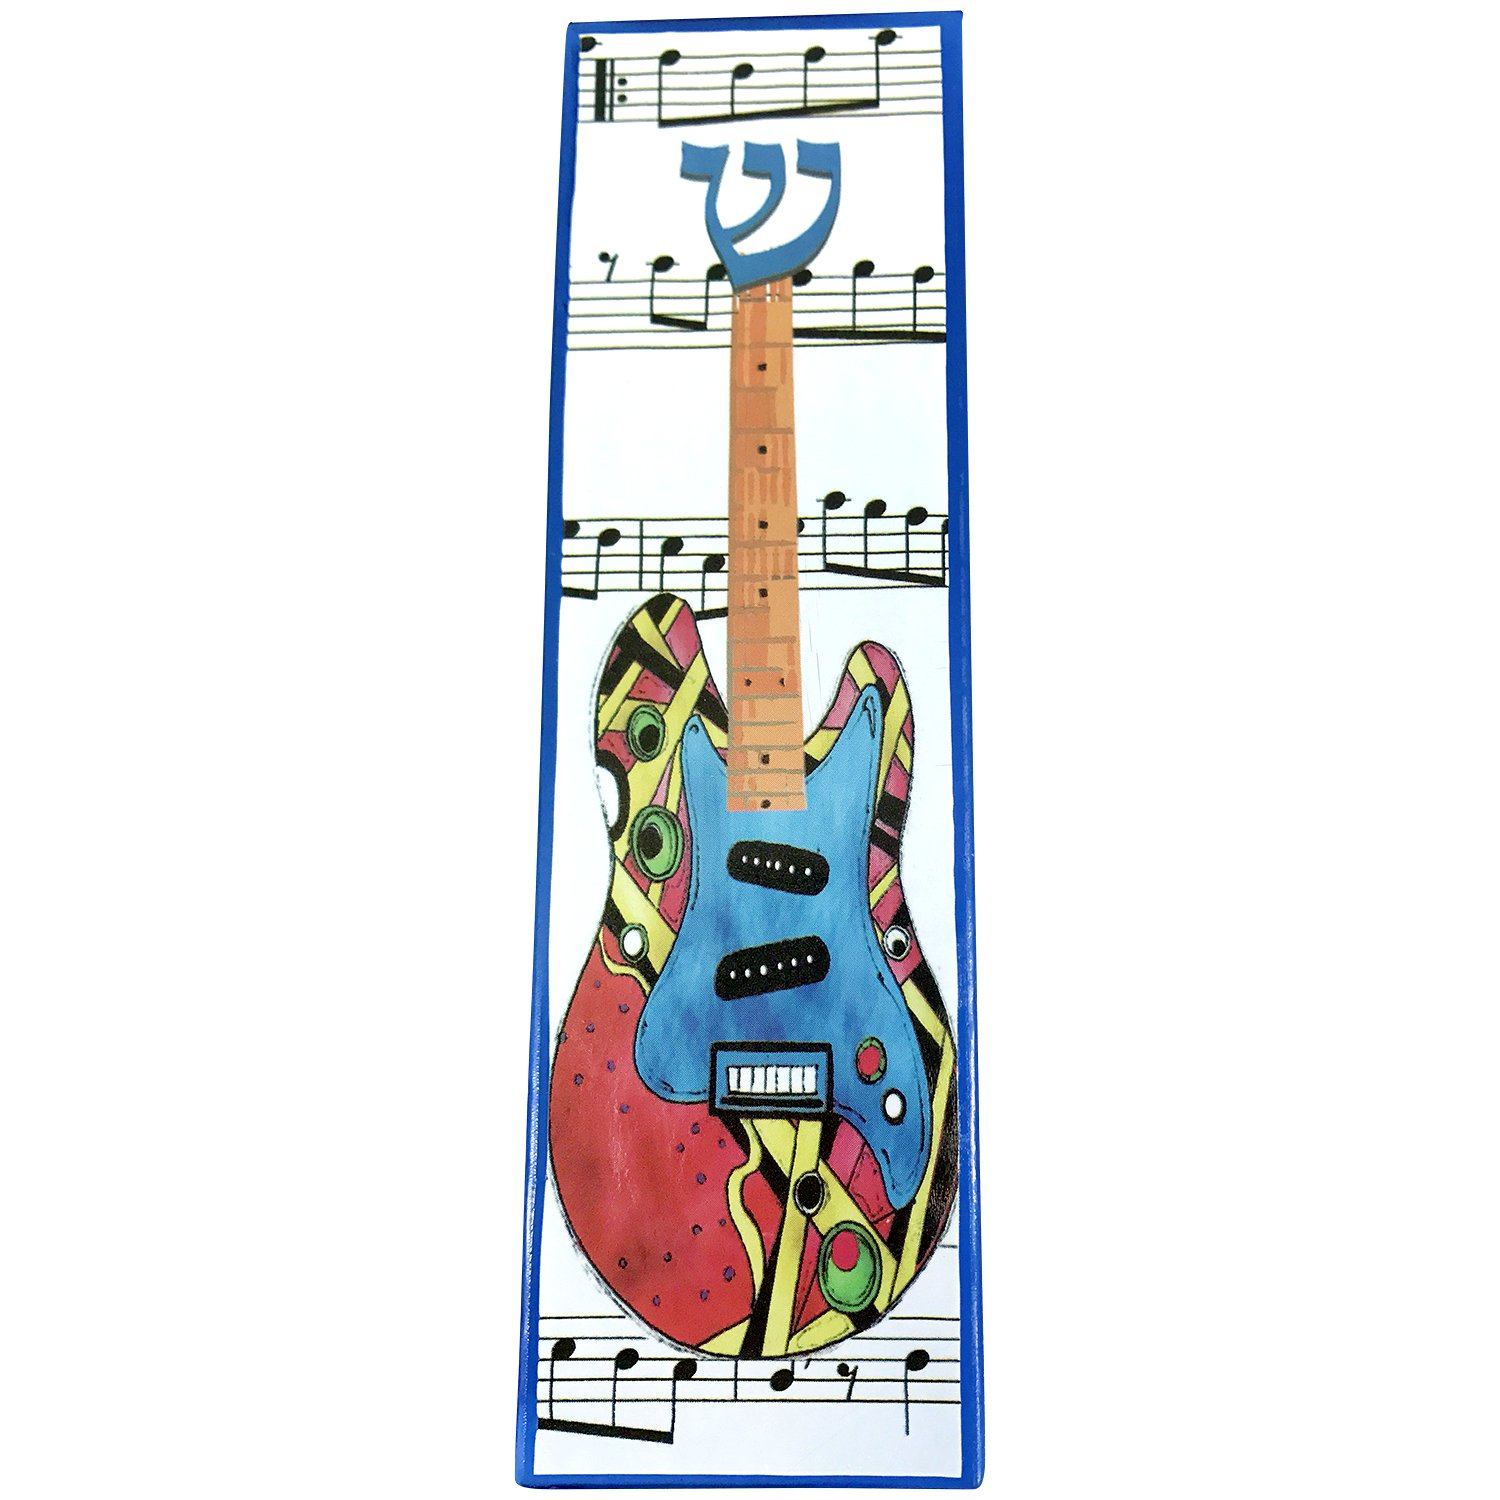 EASY MOUNT Electric Guitar Art Glass Mezuzah, GIFT BOX and Non-Kosher Scroll INCLUDED. Great Mezuzah for Bar or Bat Mitzvah Gift, Music Lover, Kids Room, Dorm